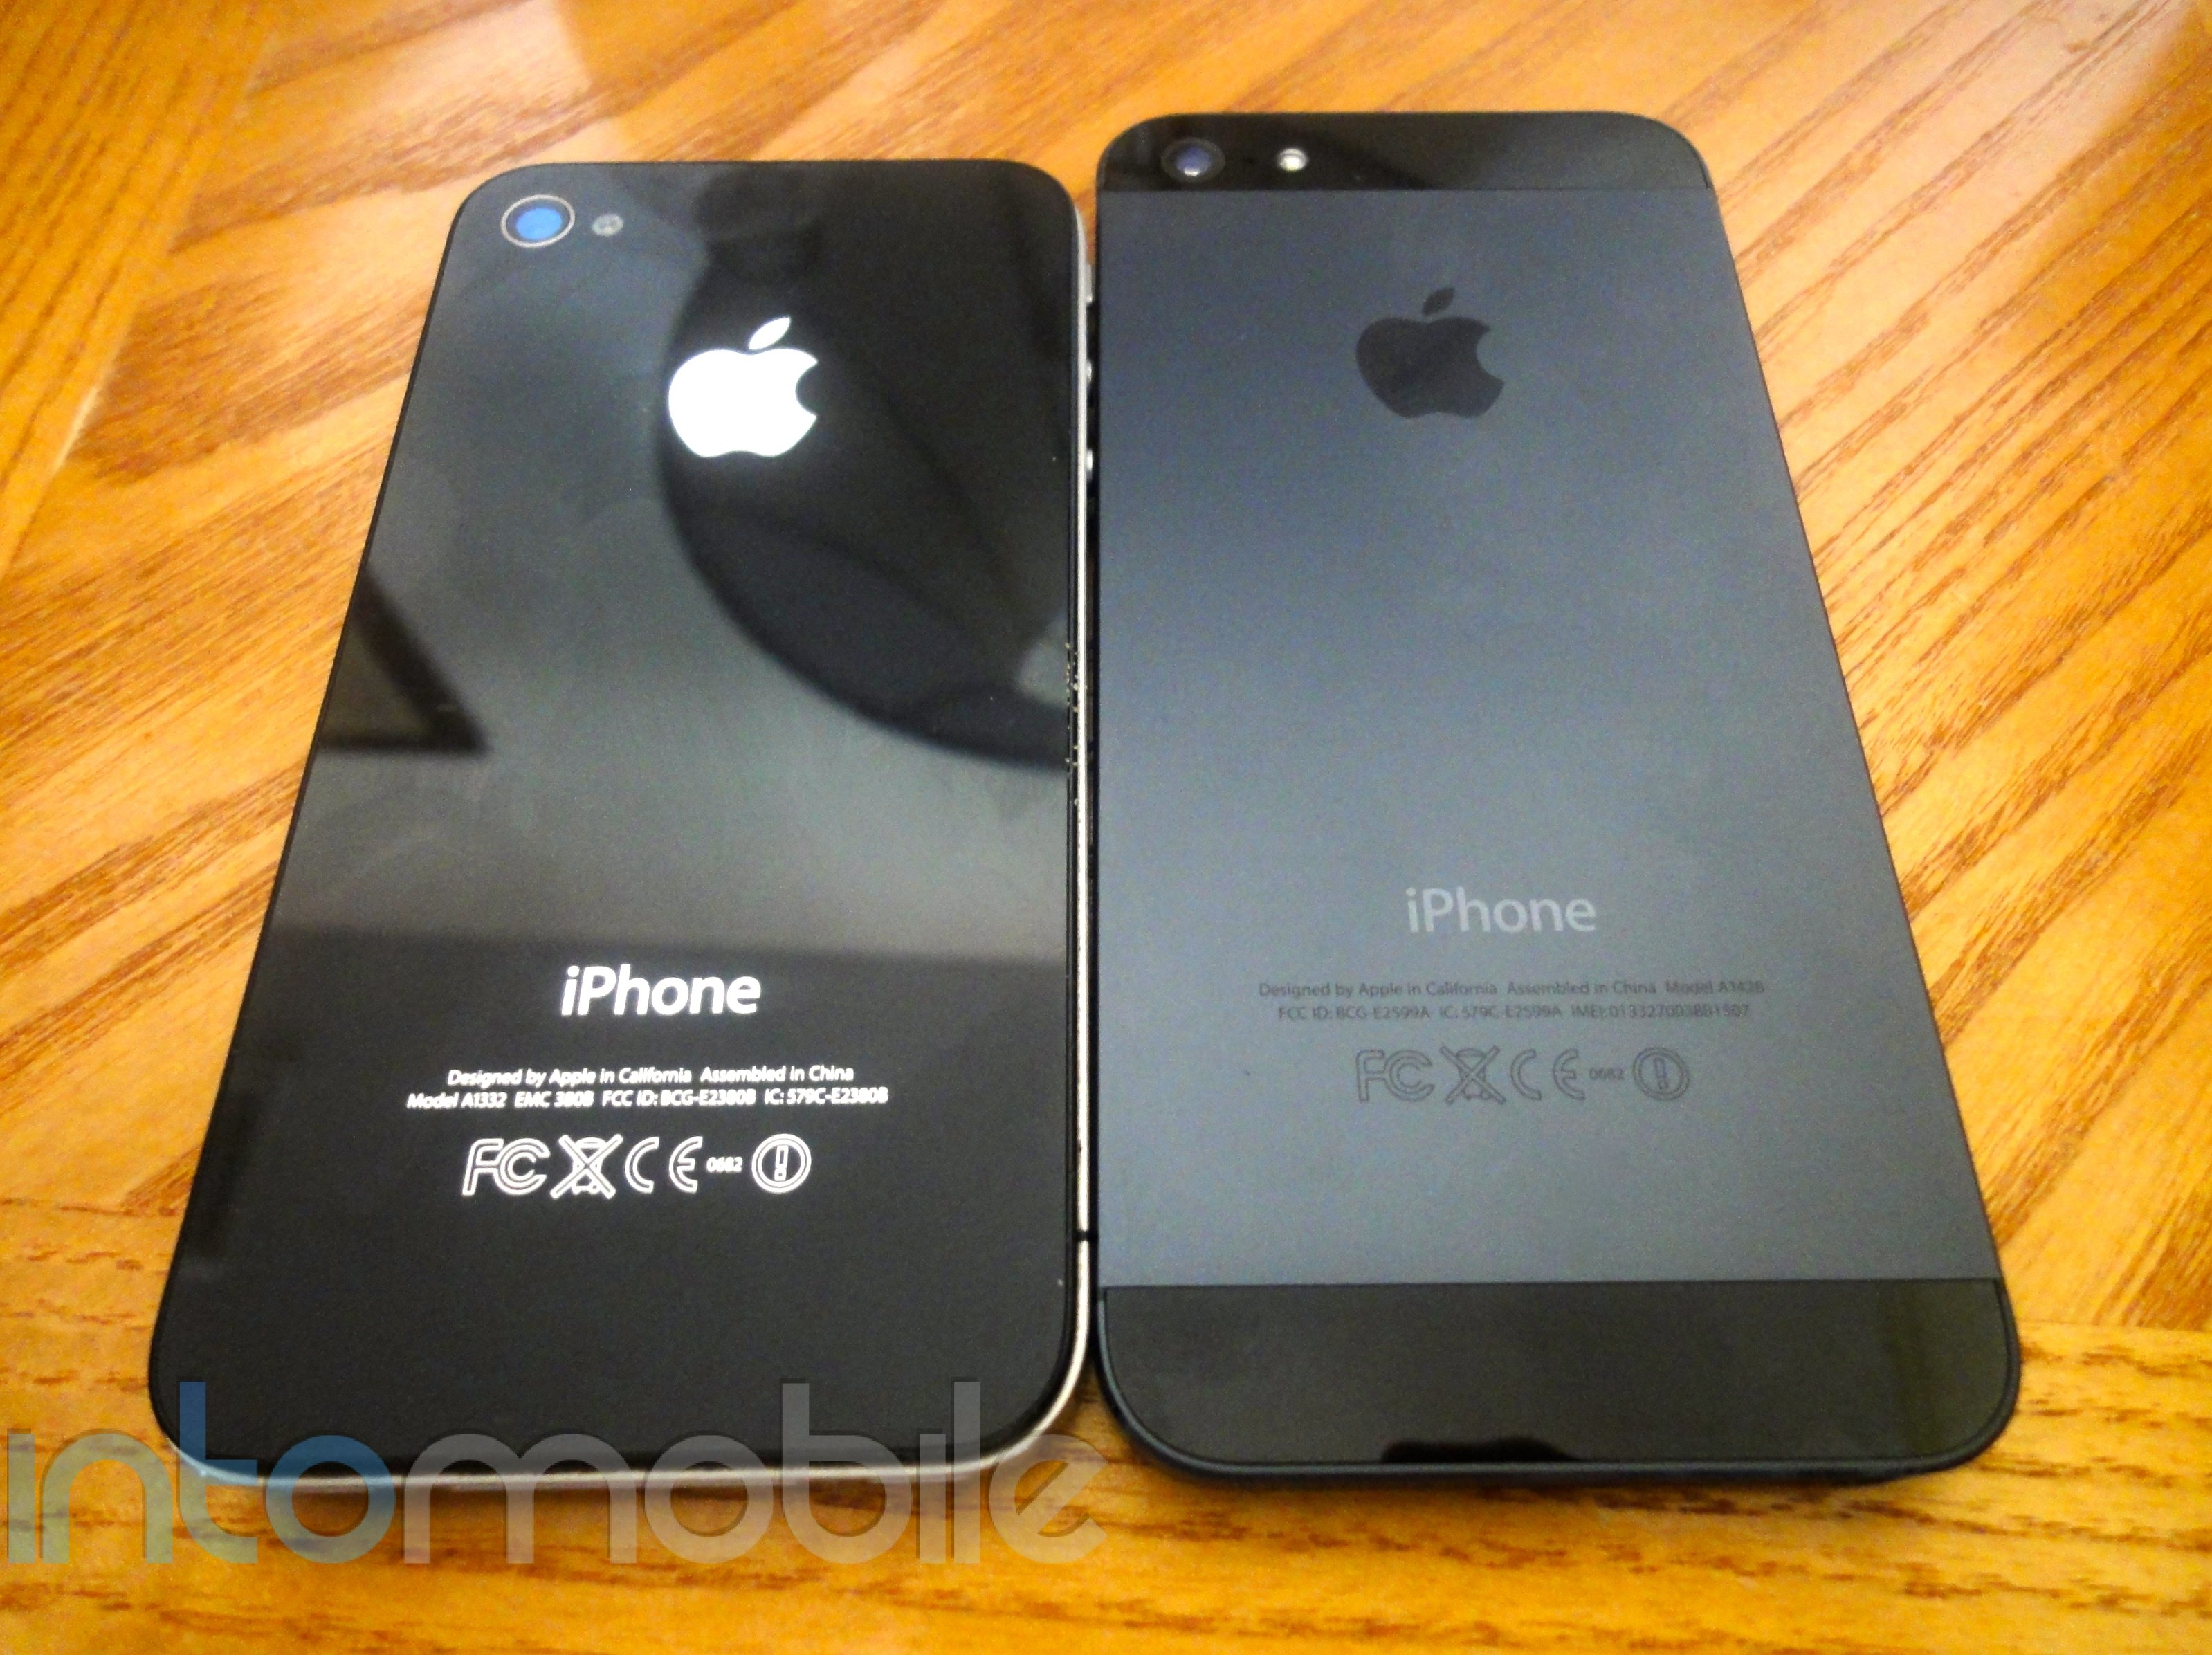 iPhone 5 review - comparison (back)